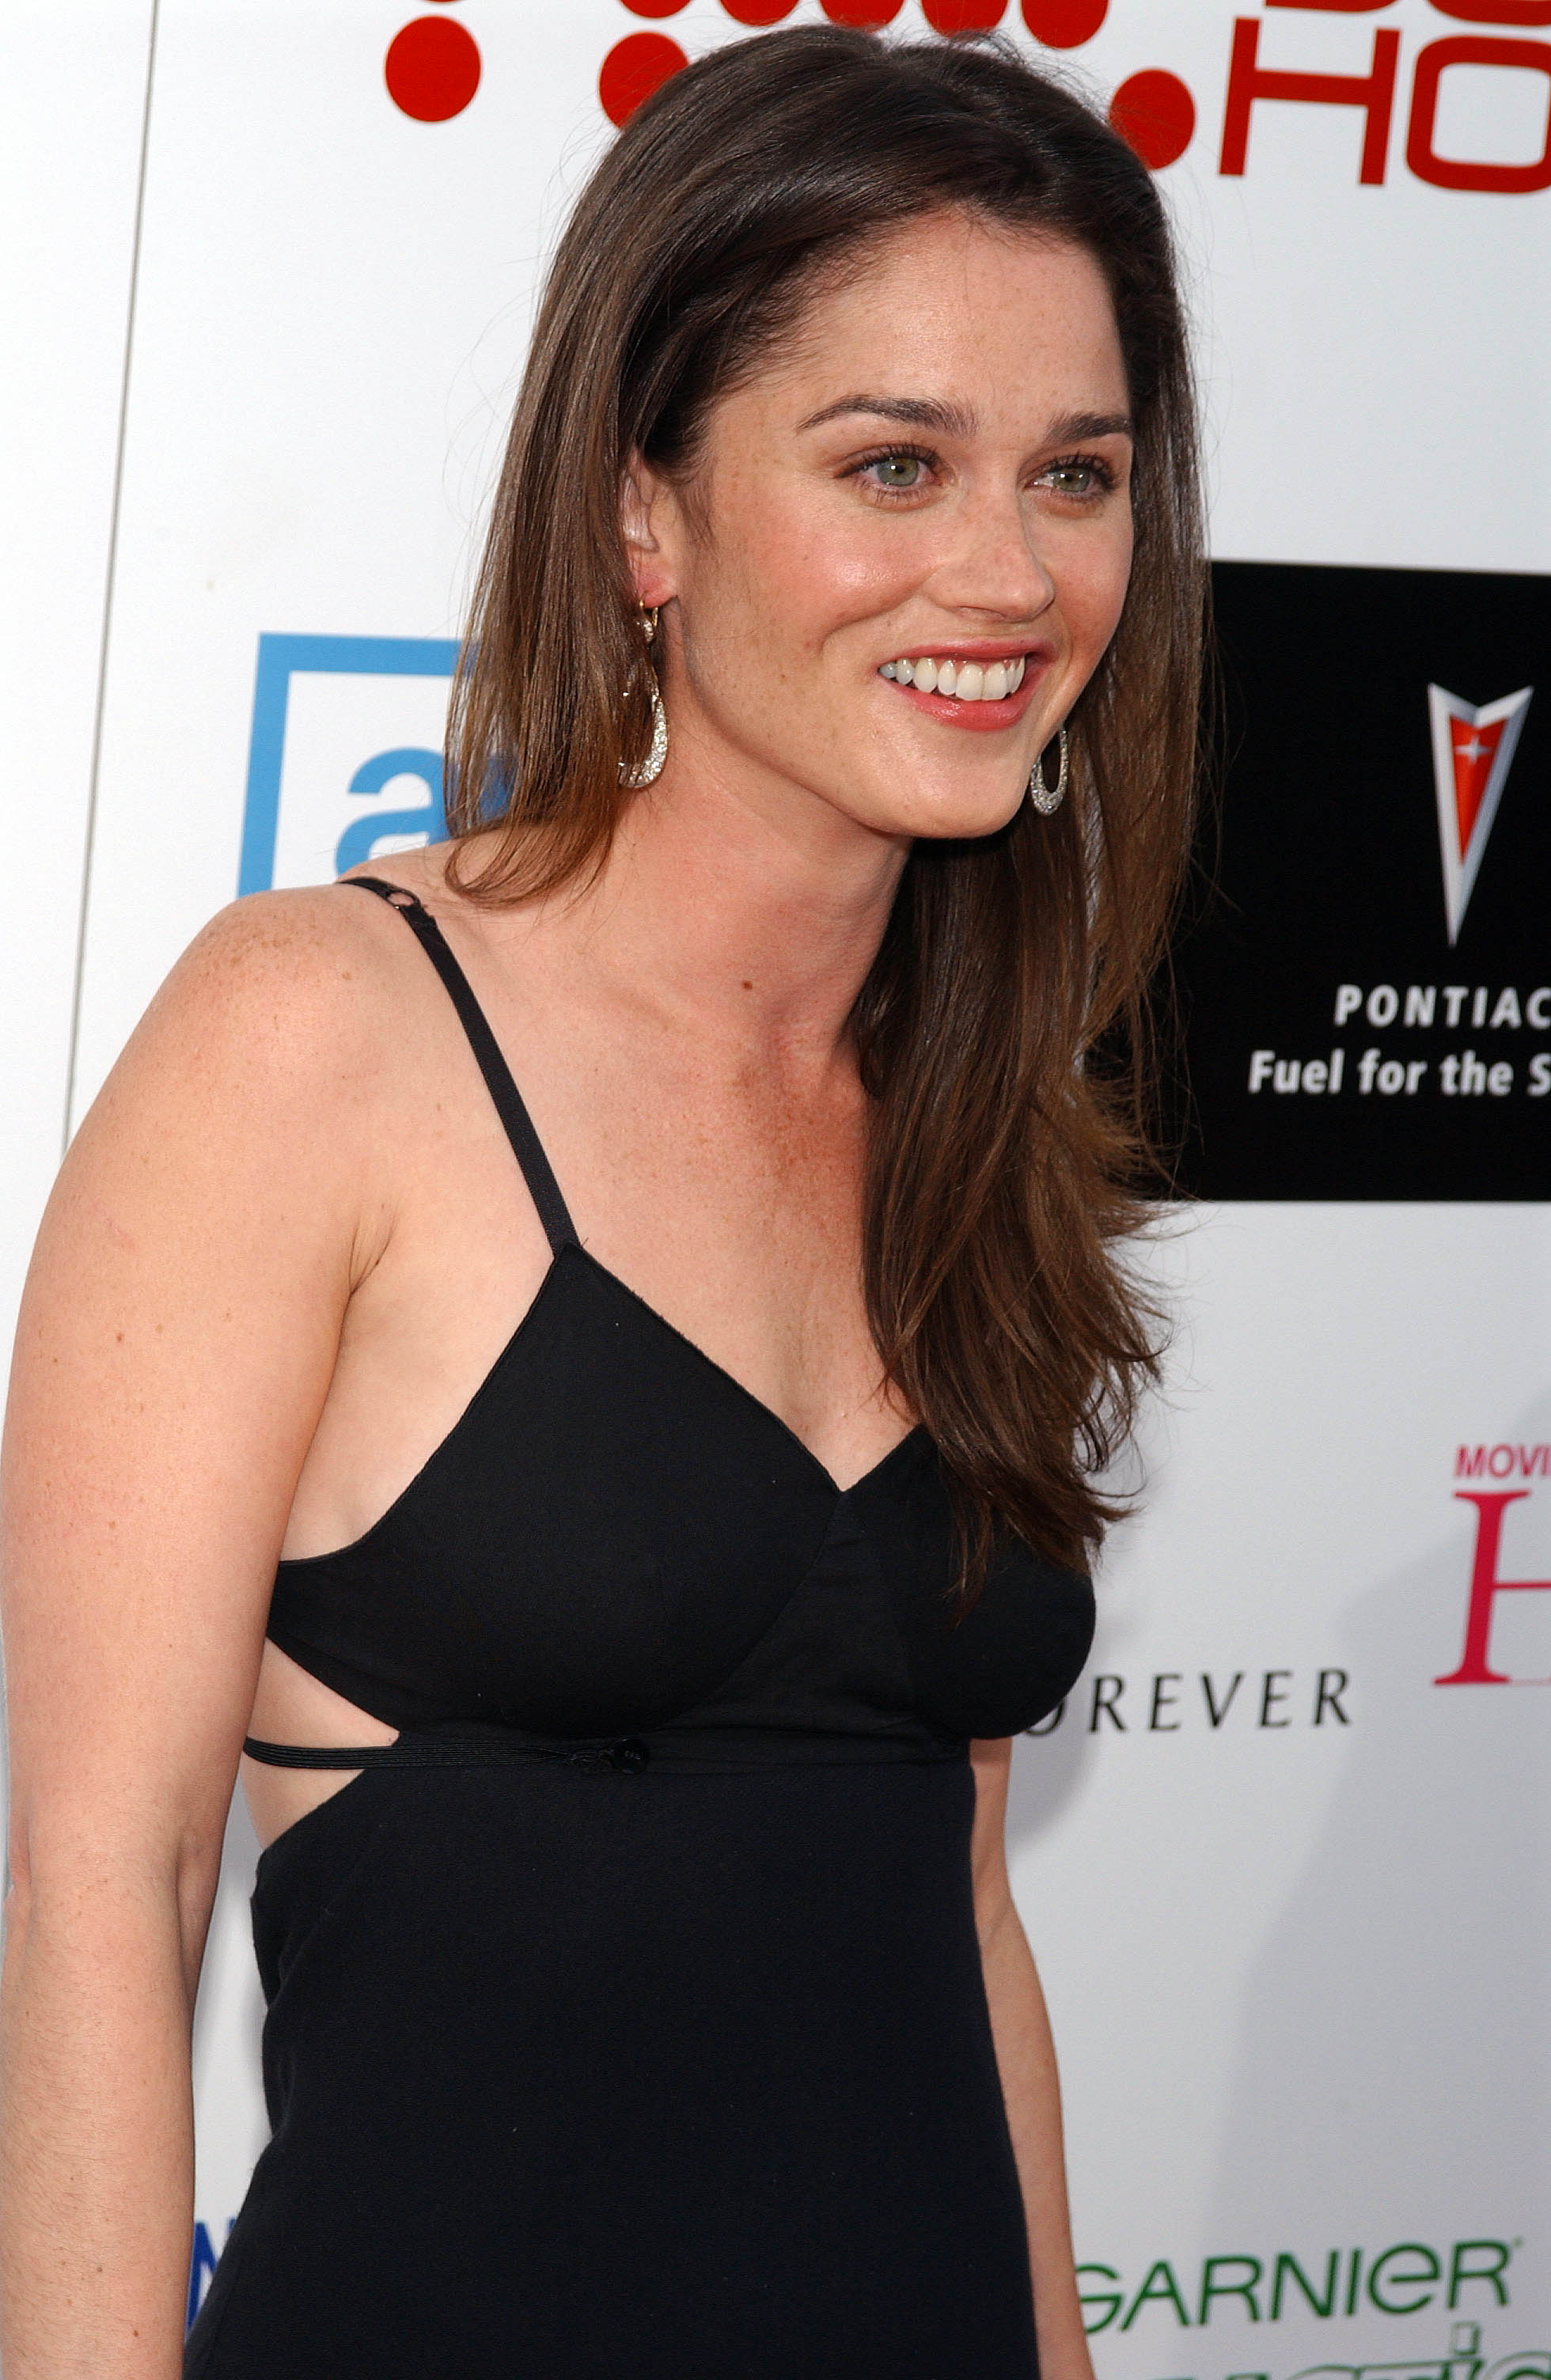 Robin Tunney earned a  million dollar salary - leaving the net worth at 4 million in 2017